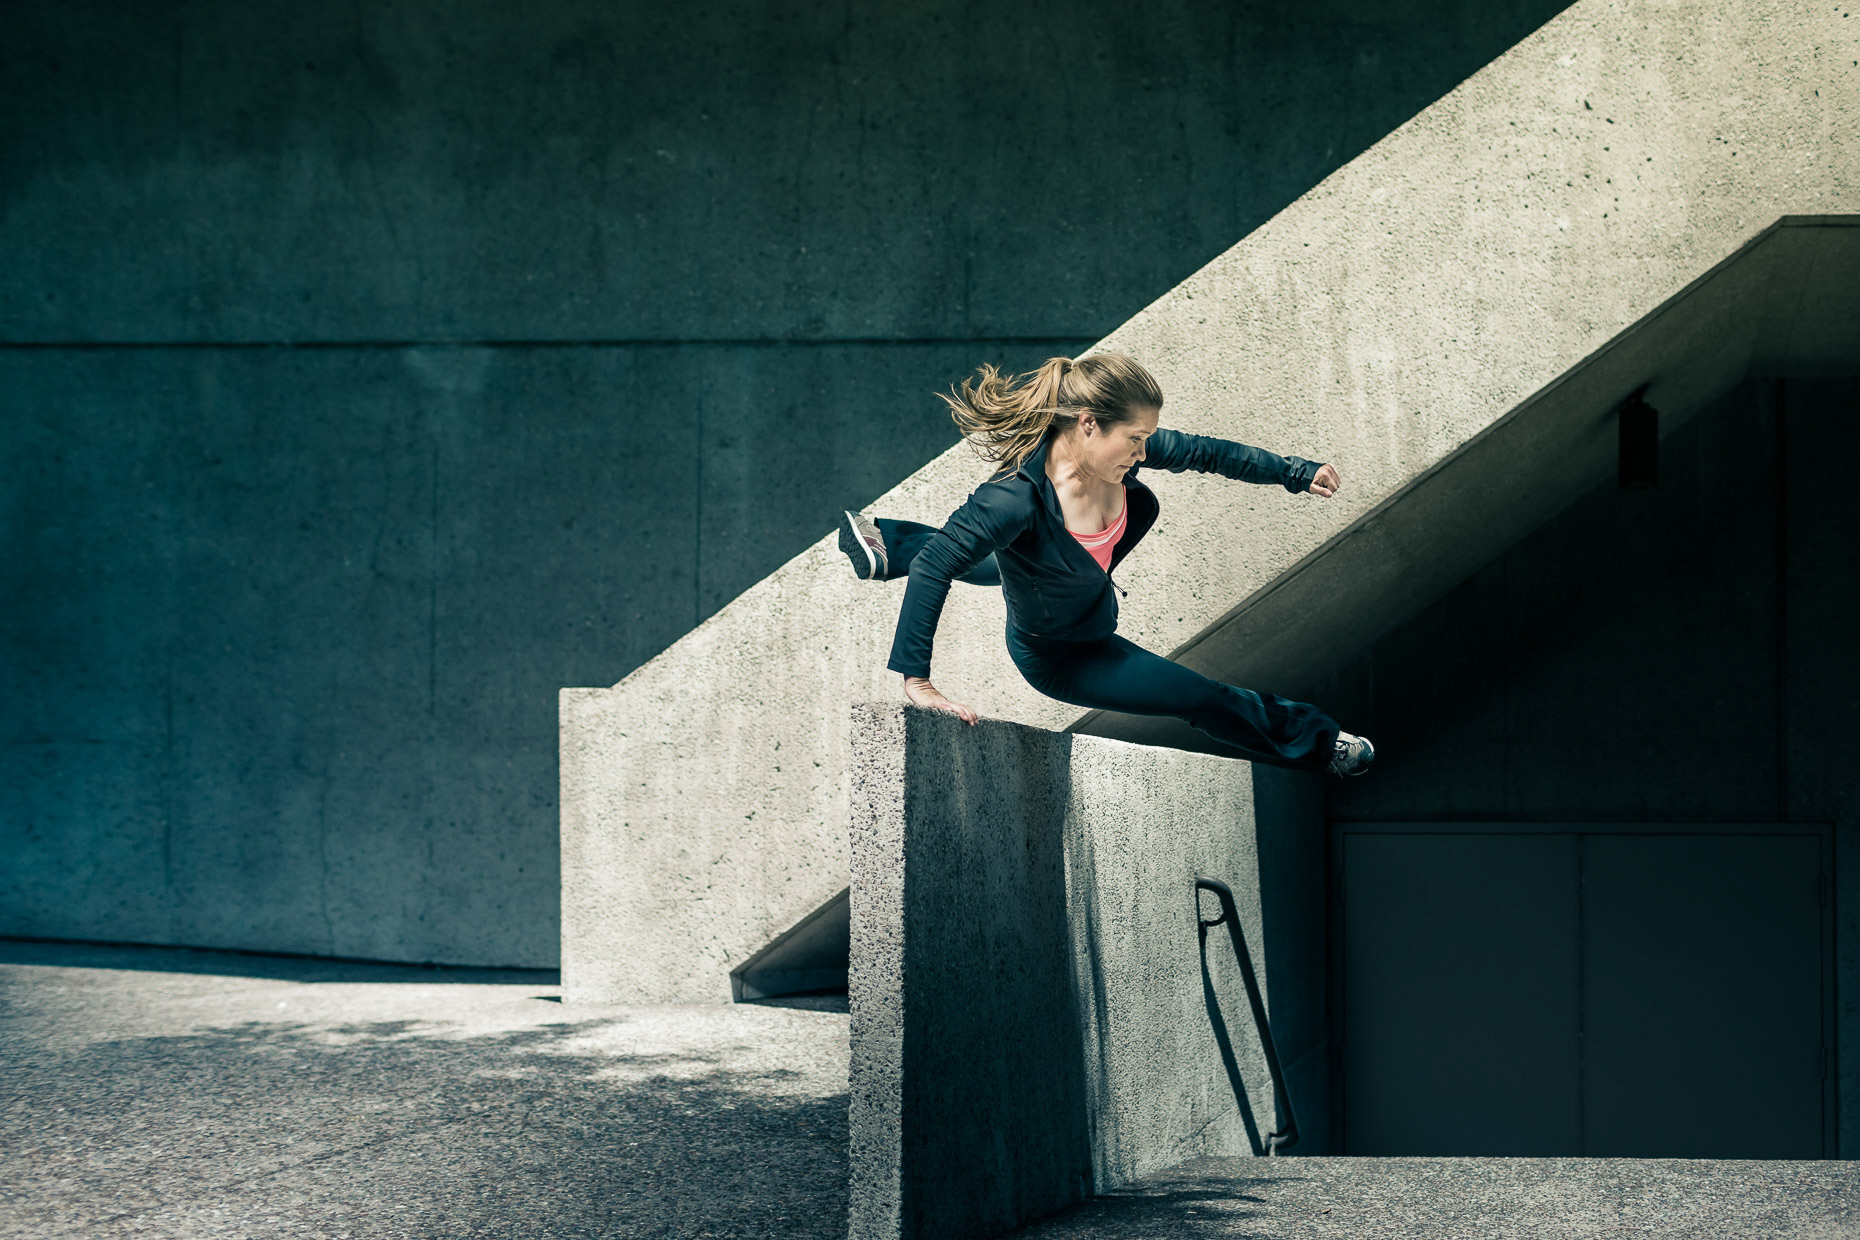 Luci Romberg freerunner parkour athlete leaping over concrete barrier wall in downtown LA by andy batt